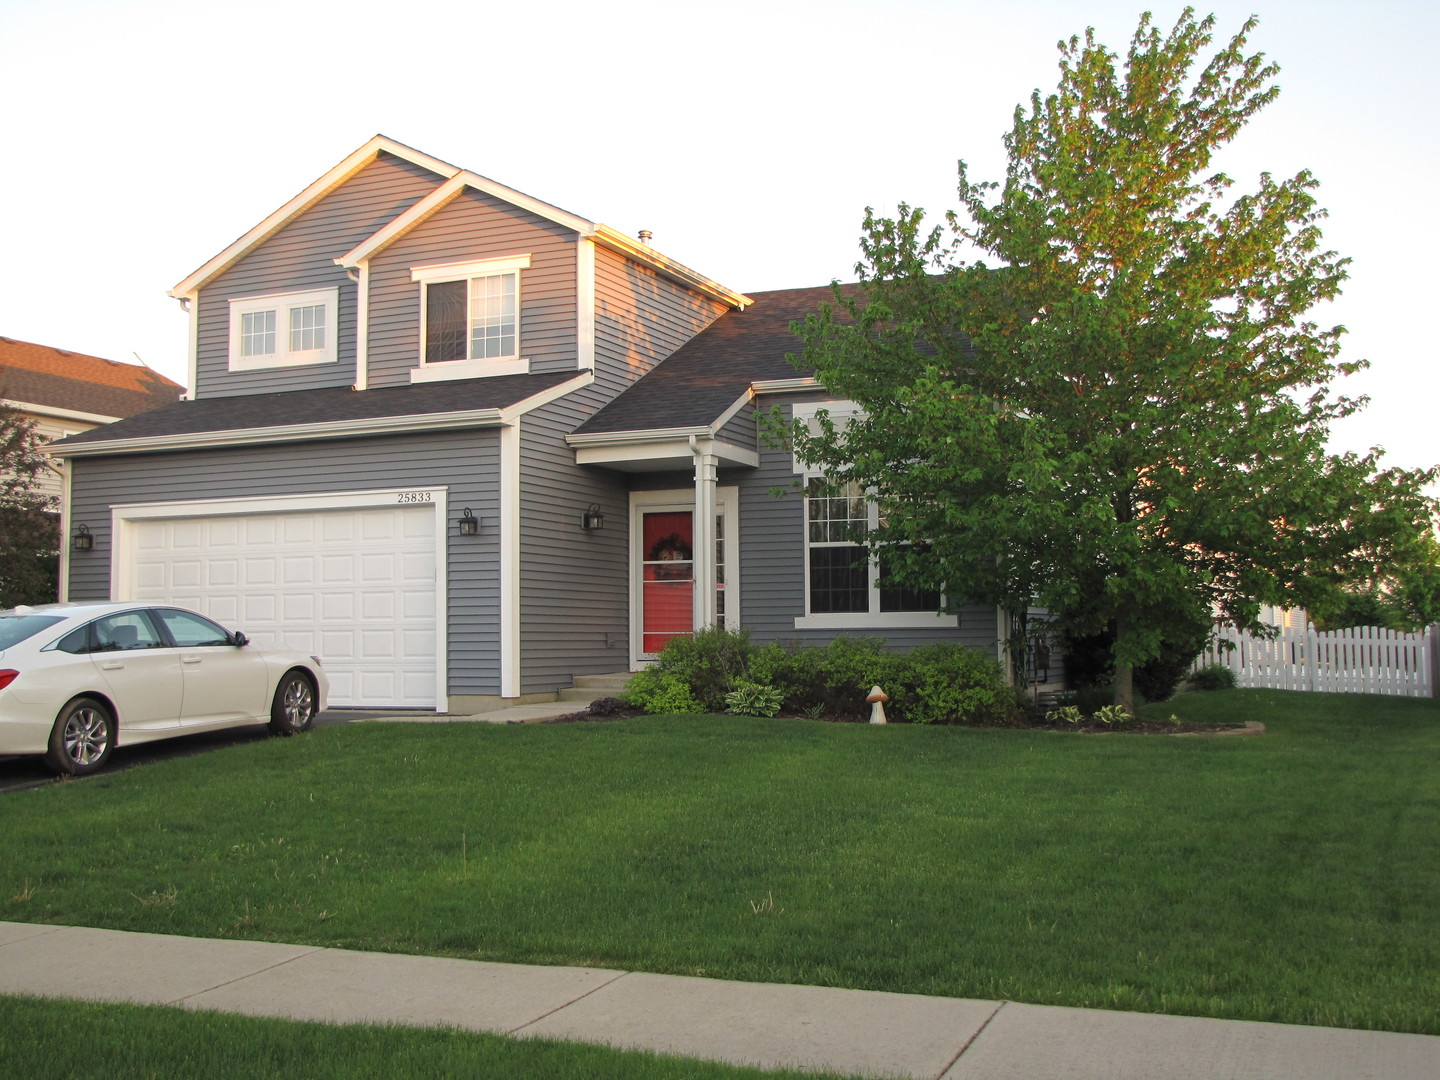 Property for sale at 25833 South Yellow Pine Drive, Channahon,  IL 60410